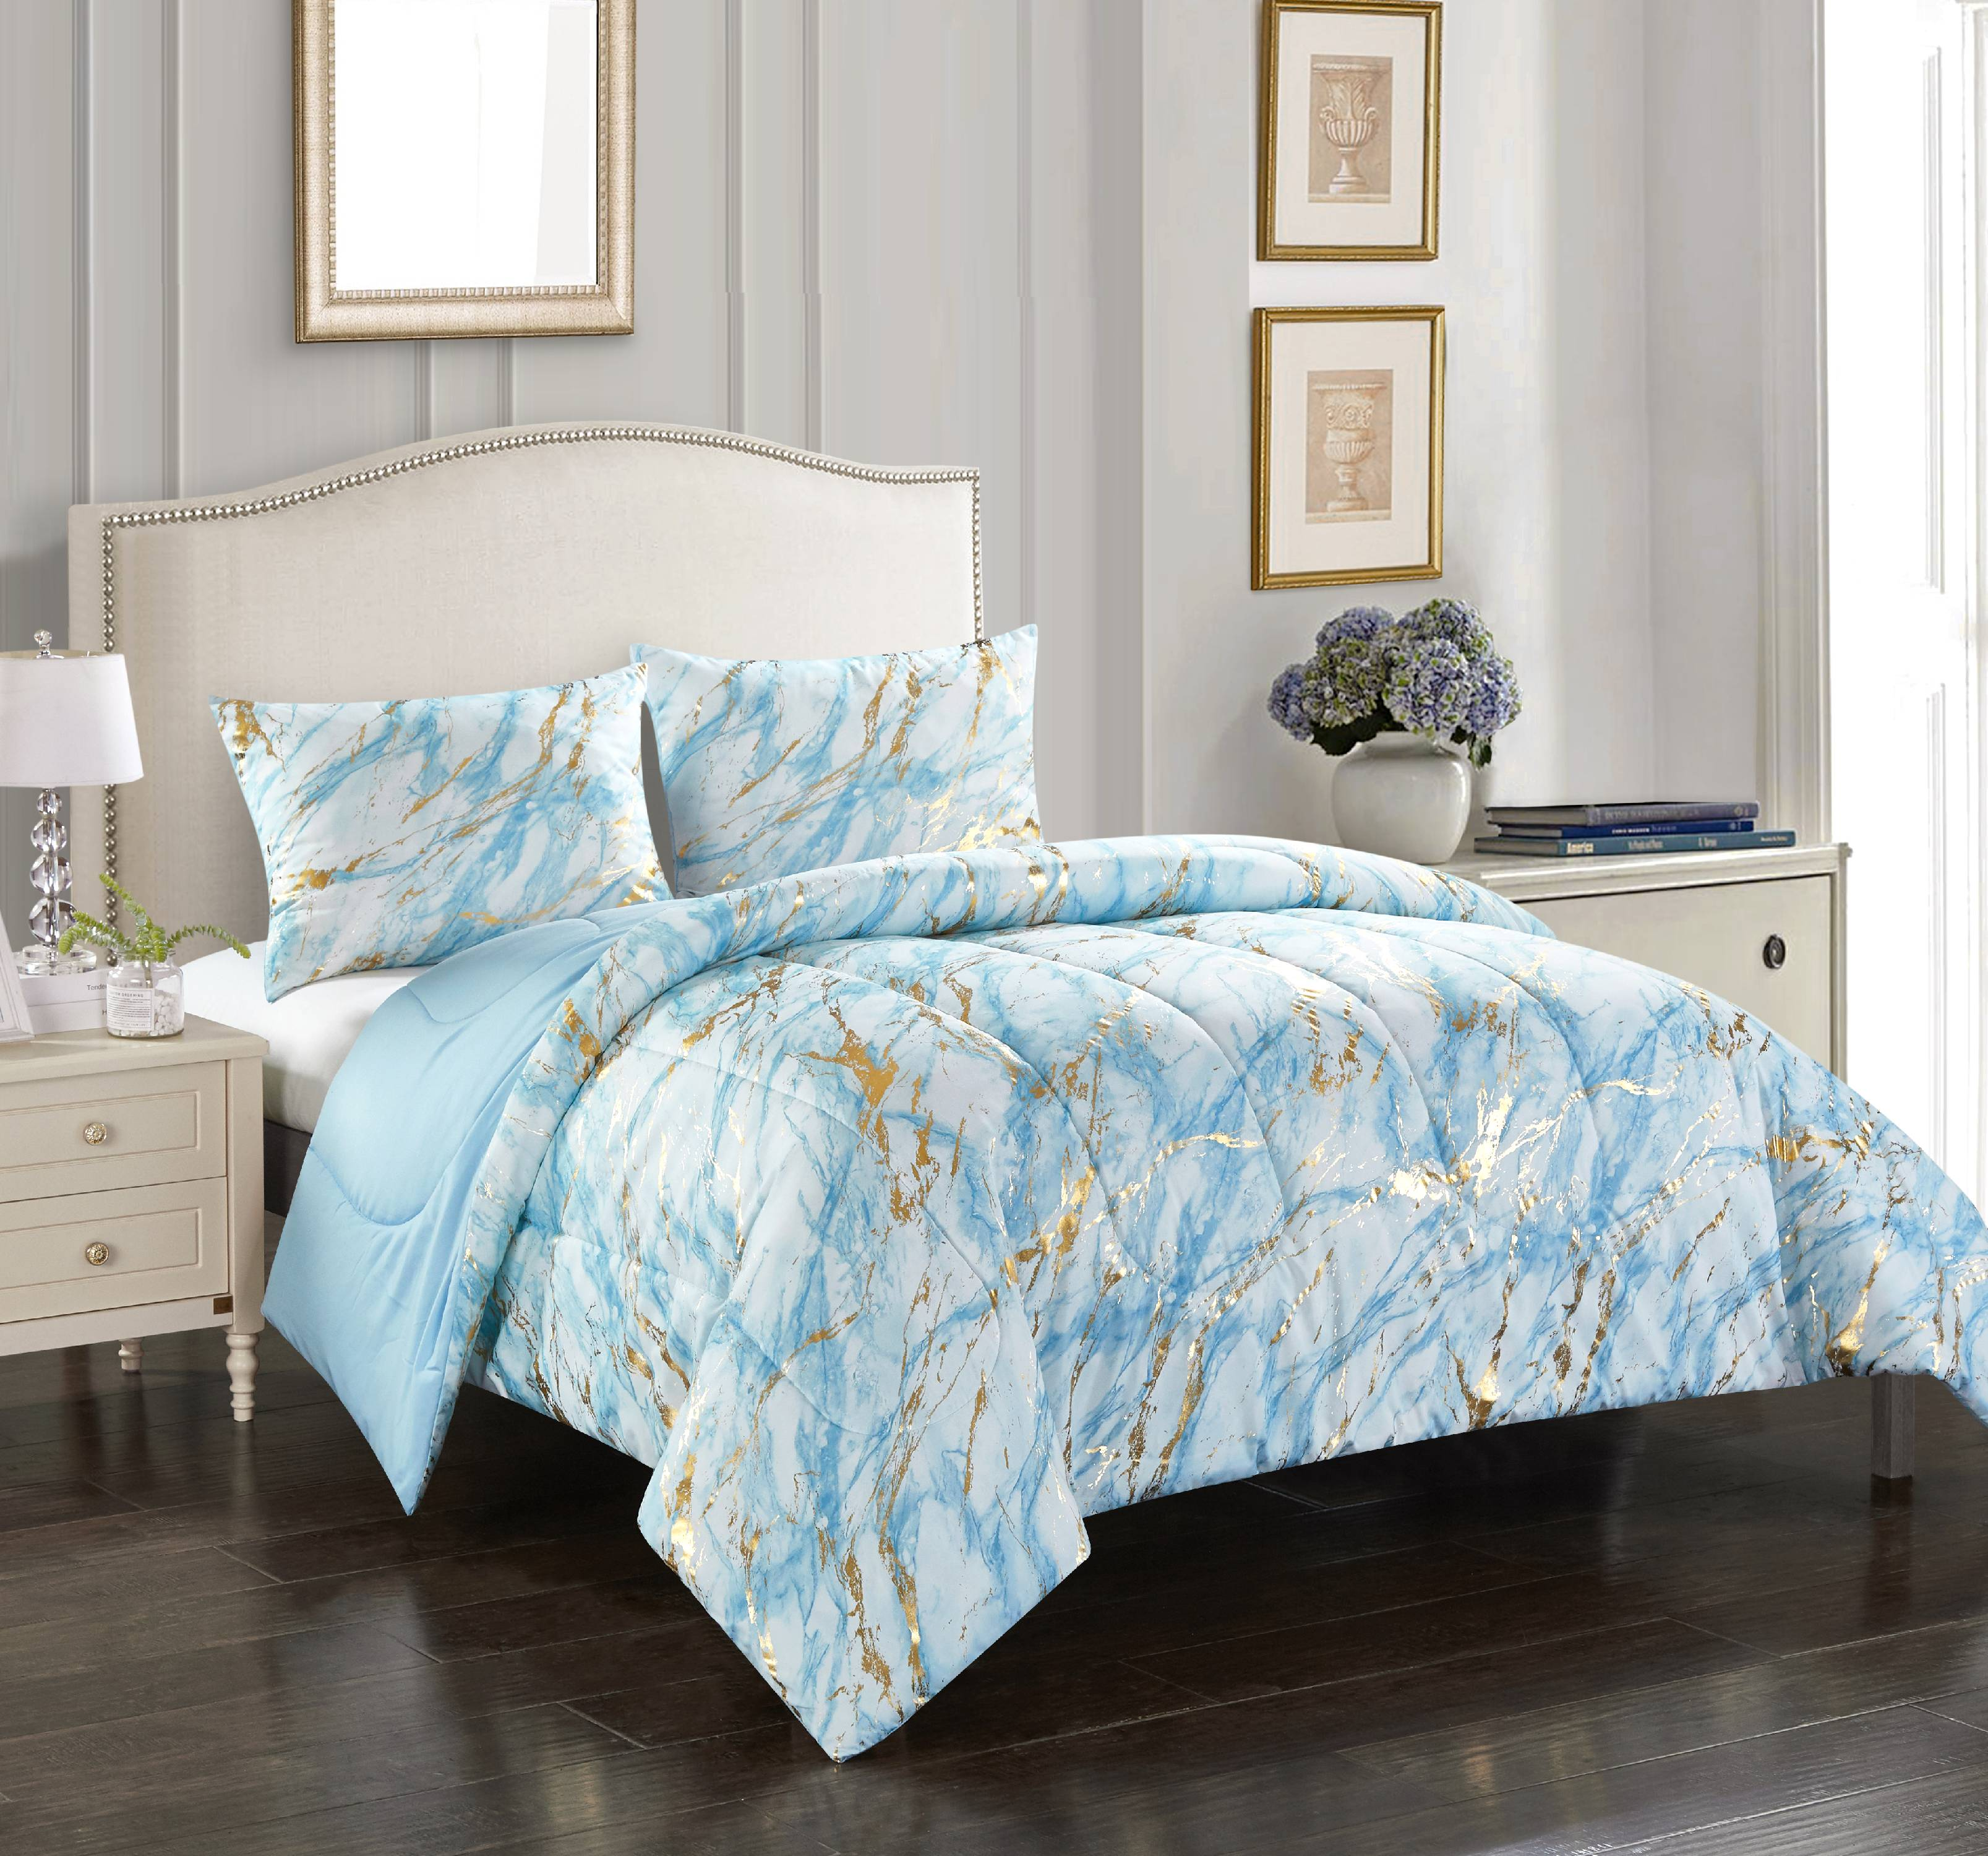 Your Zone Metallic Marble Comforter Set